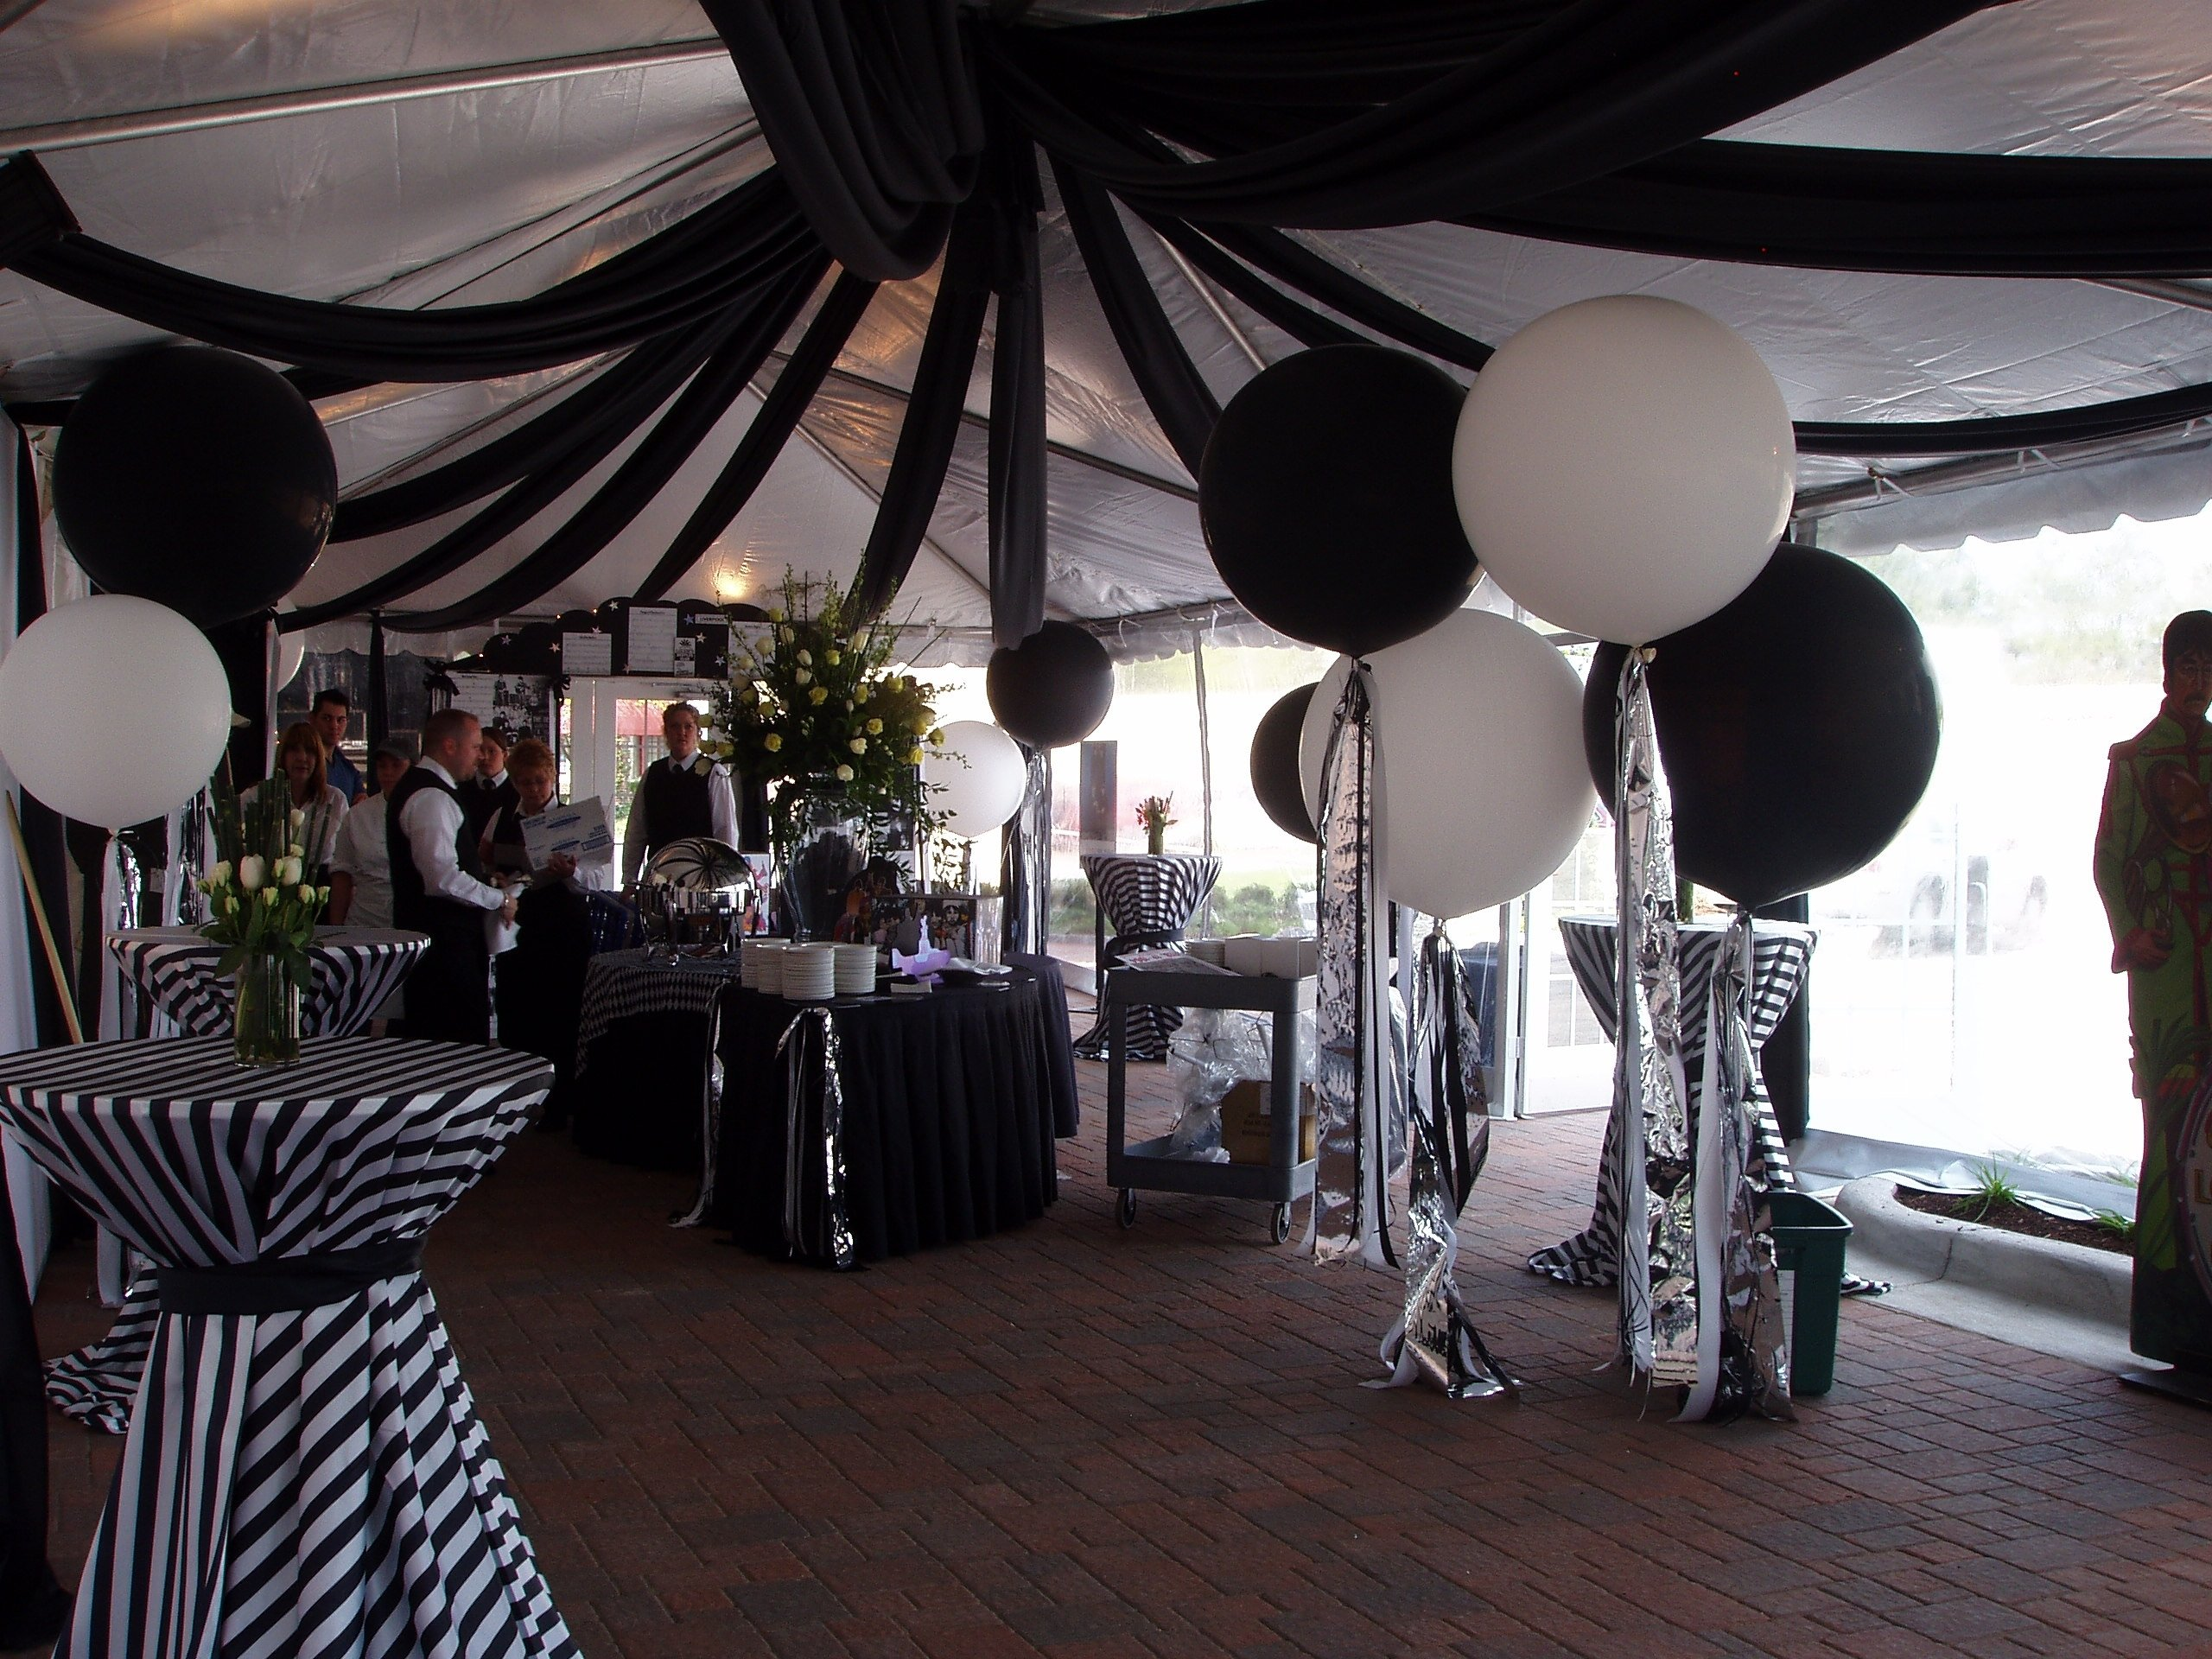 10 Stylish Black And White Party Decoration Ideas images about black and white party on pinterest theme parties 2020